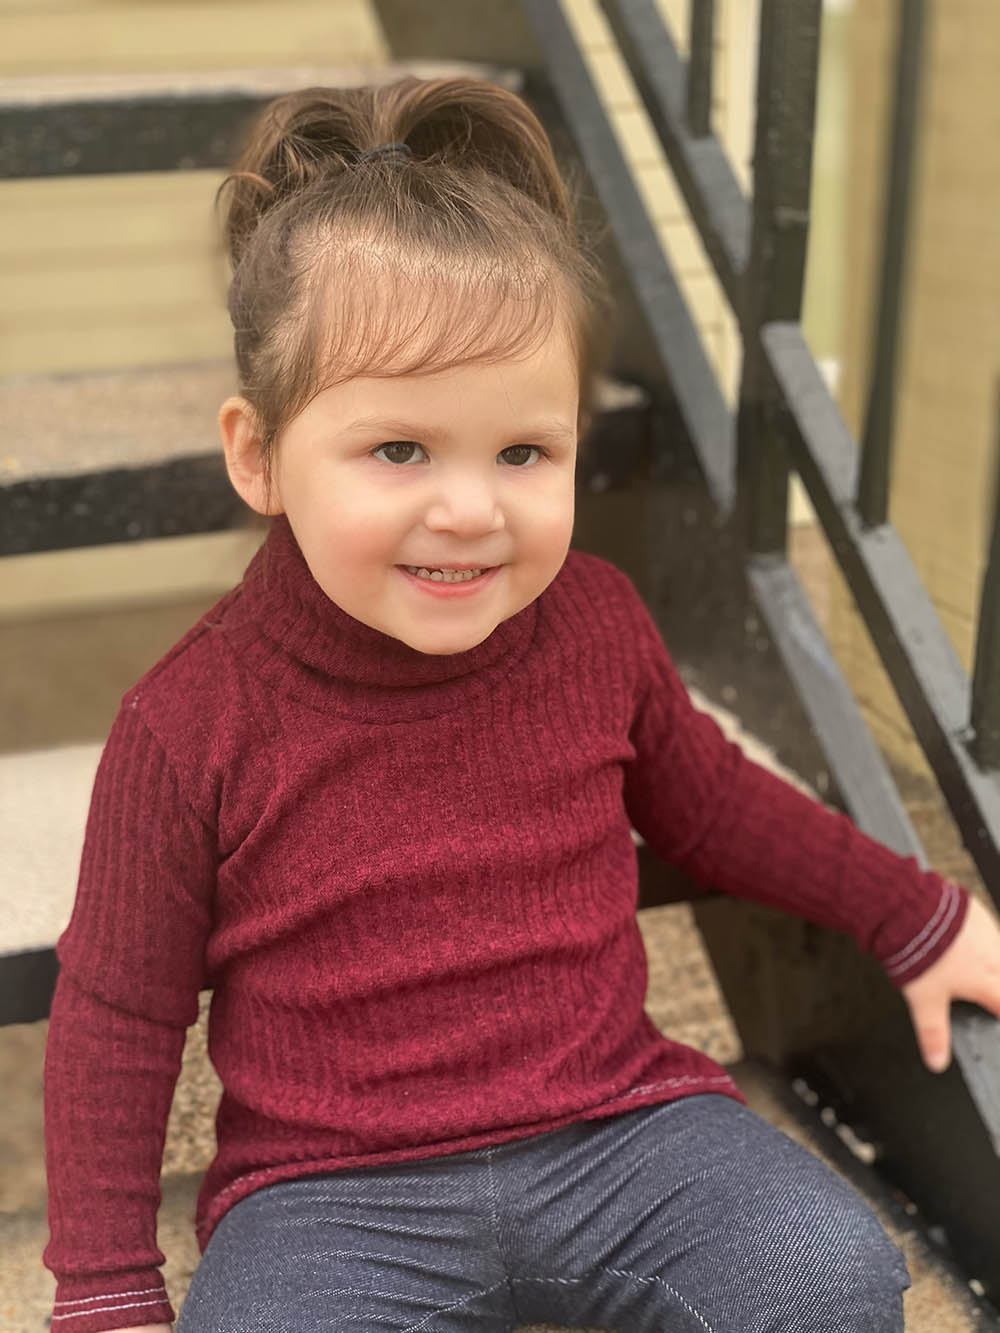 Prague's Classic Turtleneck Top and Dress Sizes 2T to 14 Kids PDF Pattern